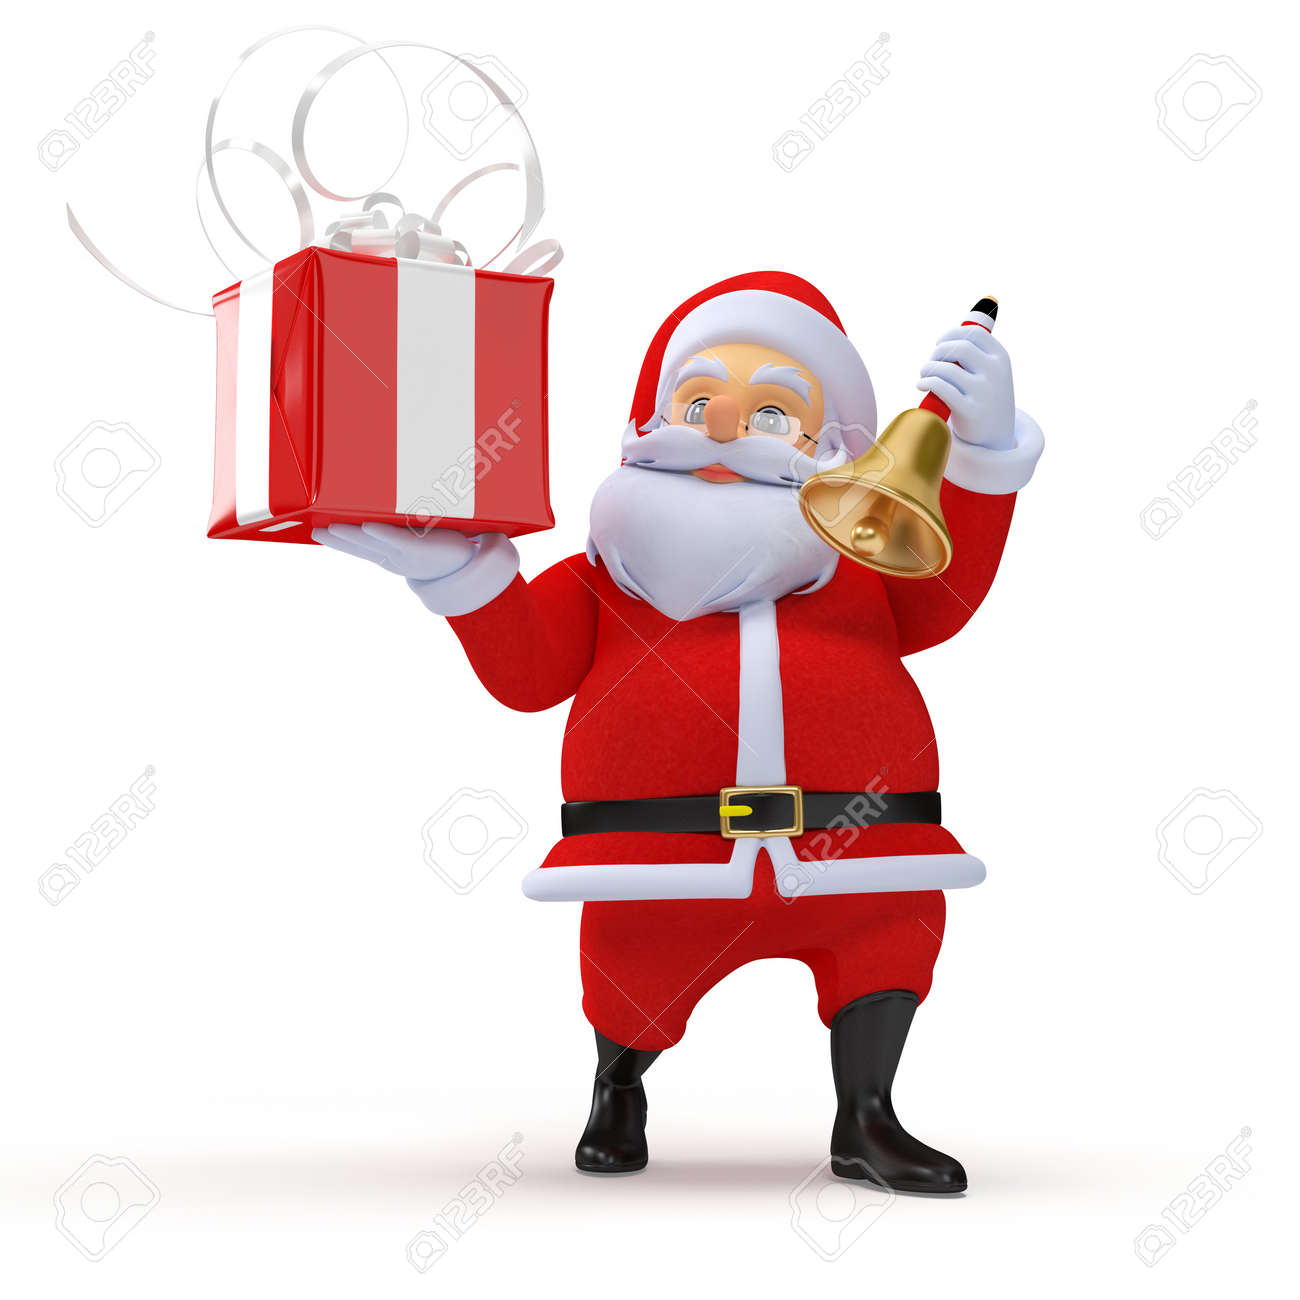 3d rendered illustration of a santa claus with a present Stock Illustration - 12585866